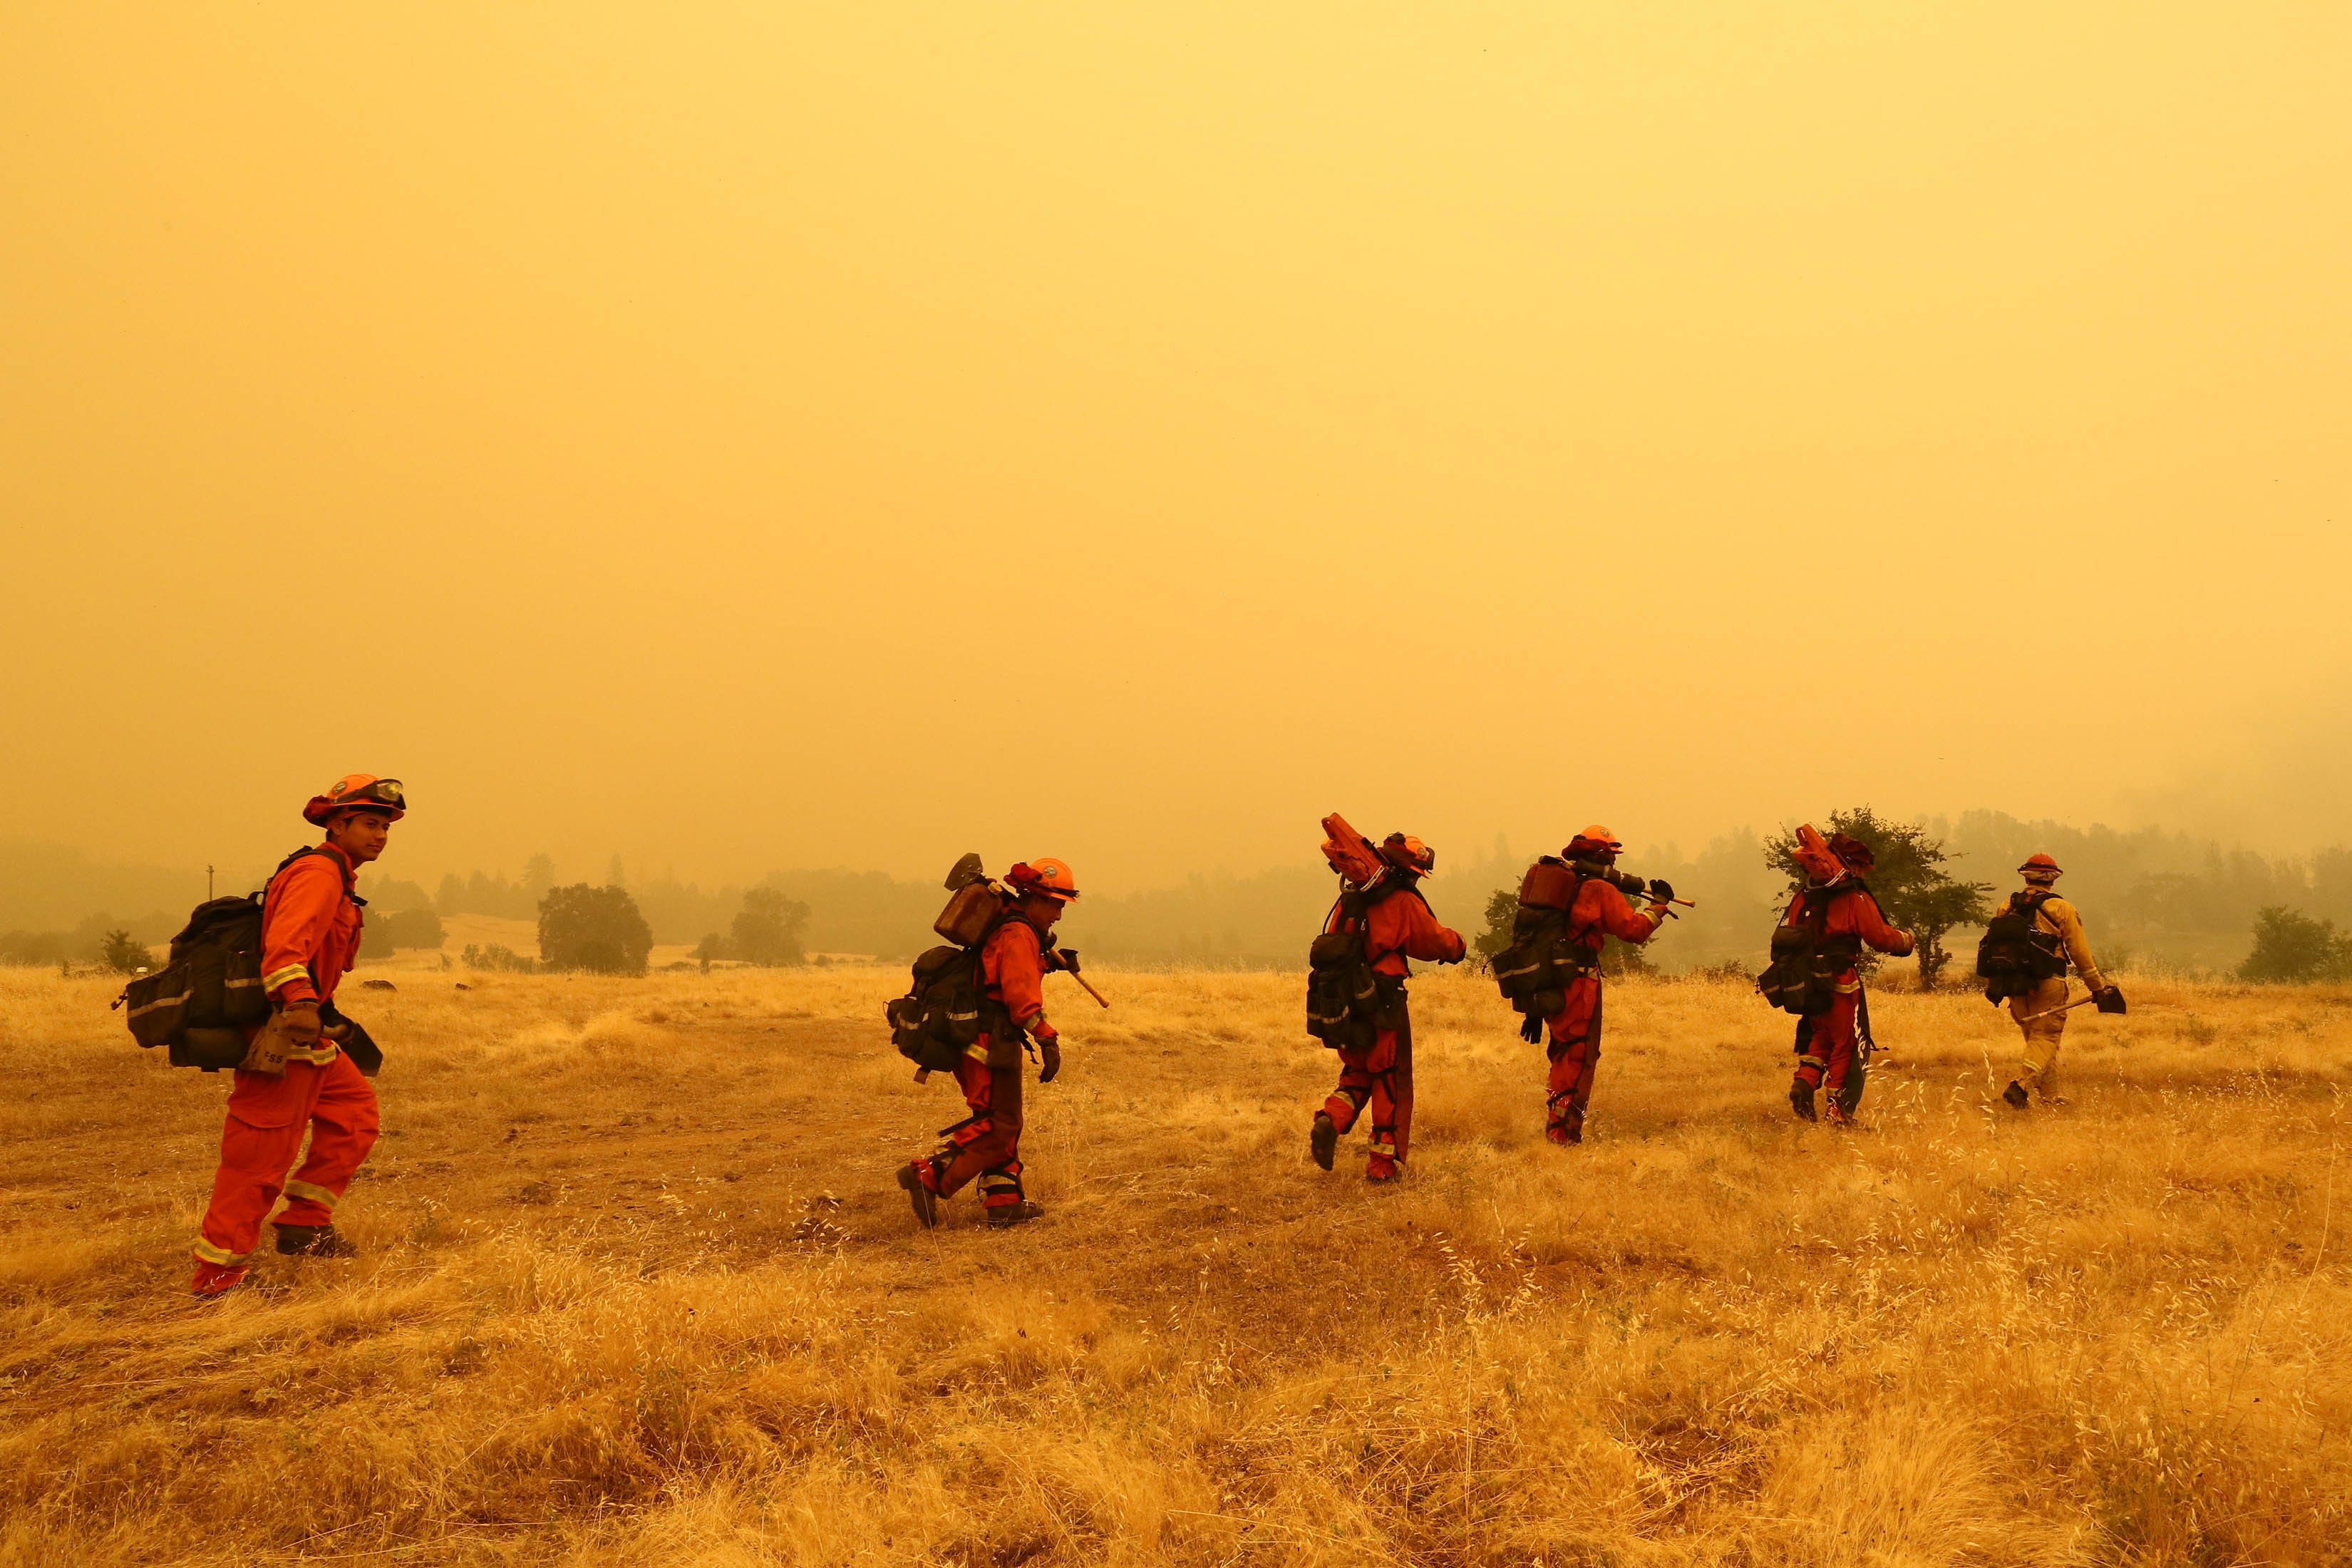 Inmate firefighters head out to the field to prepare containment areas in Igo, Calif. on July 28, 2018.